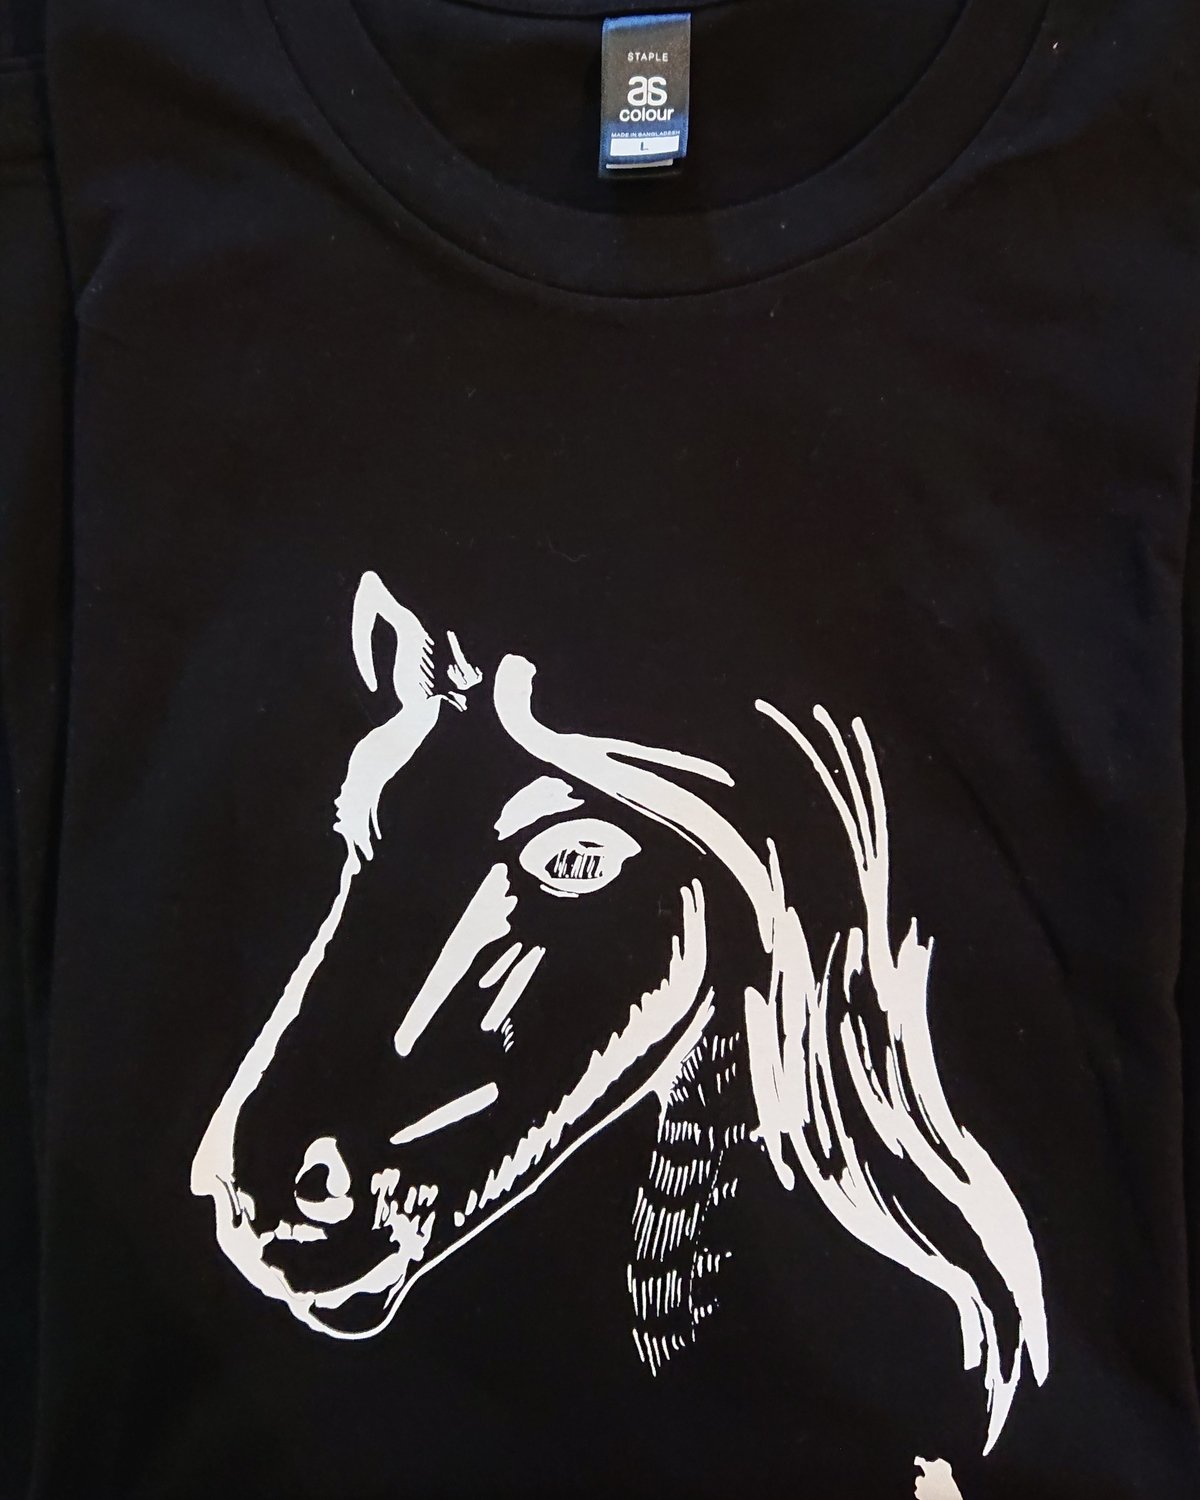 Show Ponies T-shirt - Black and White - Medium